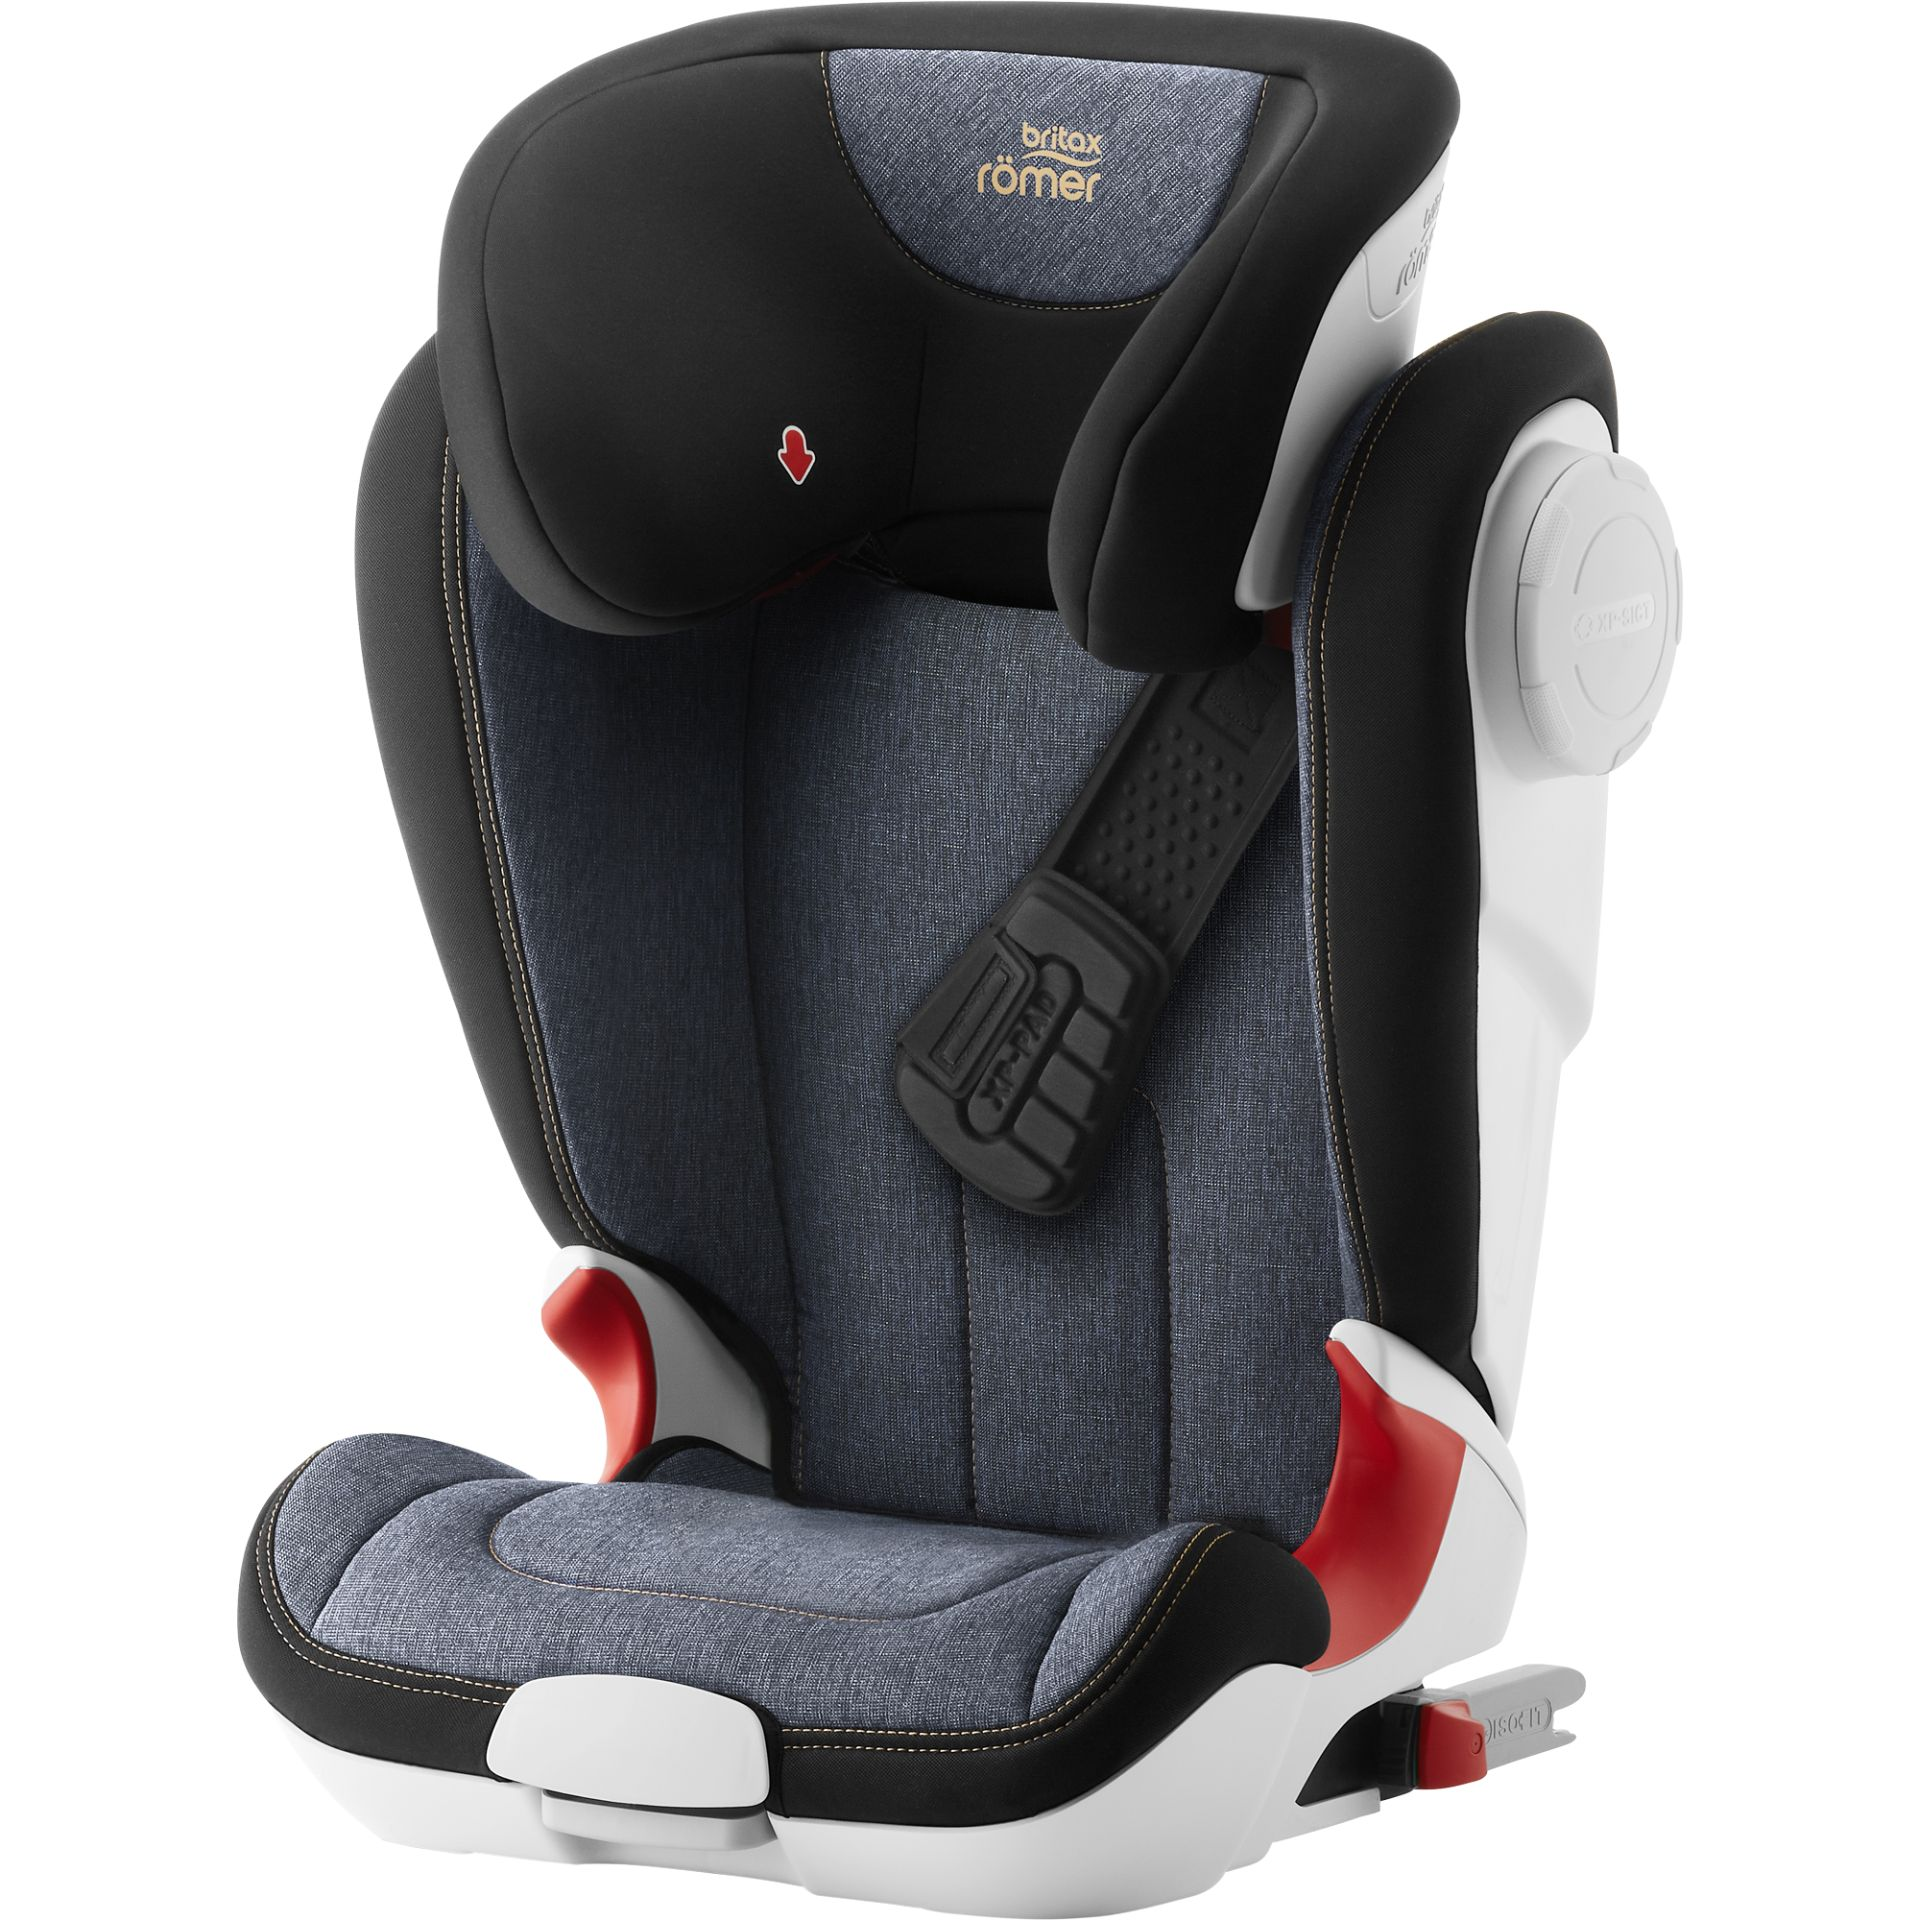 britax r mer car seat kidfix xp sict 2018 blue marble. Black Bedroom Furniture Sets. Home Design Ideas